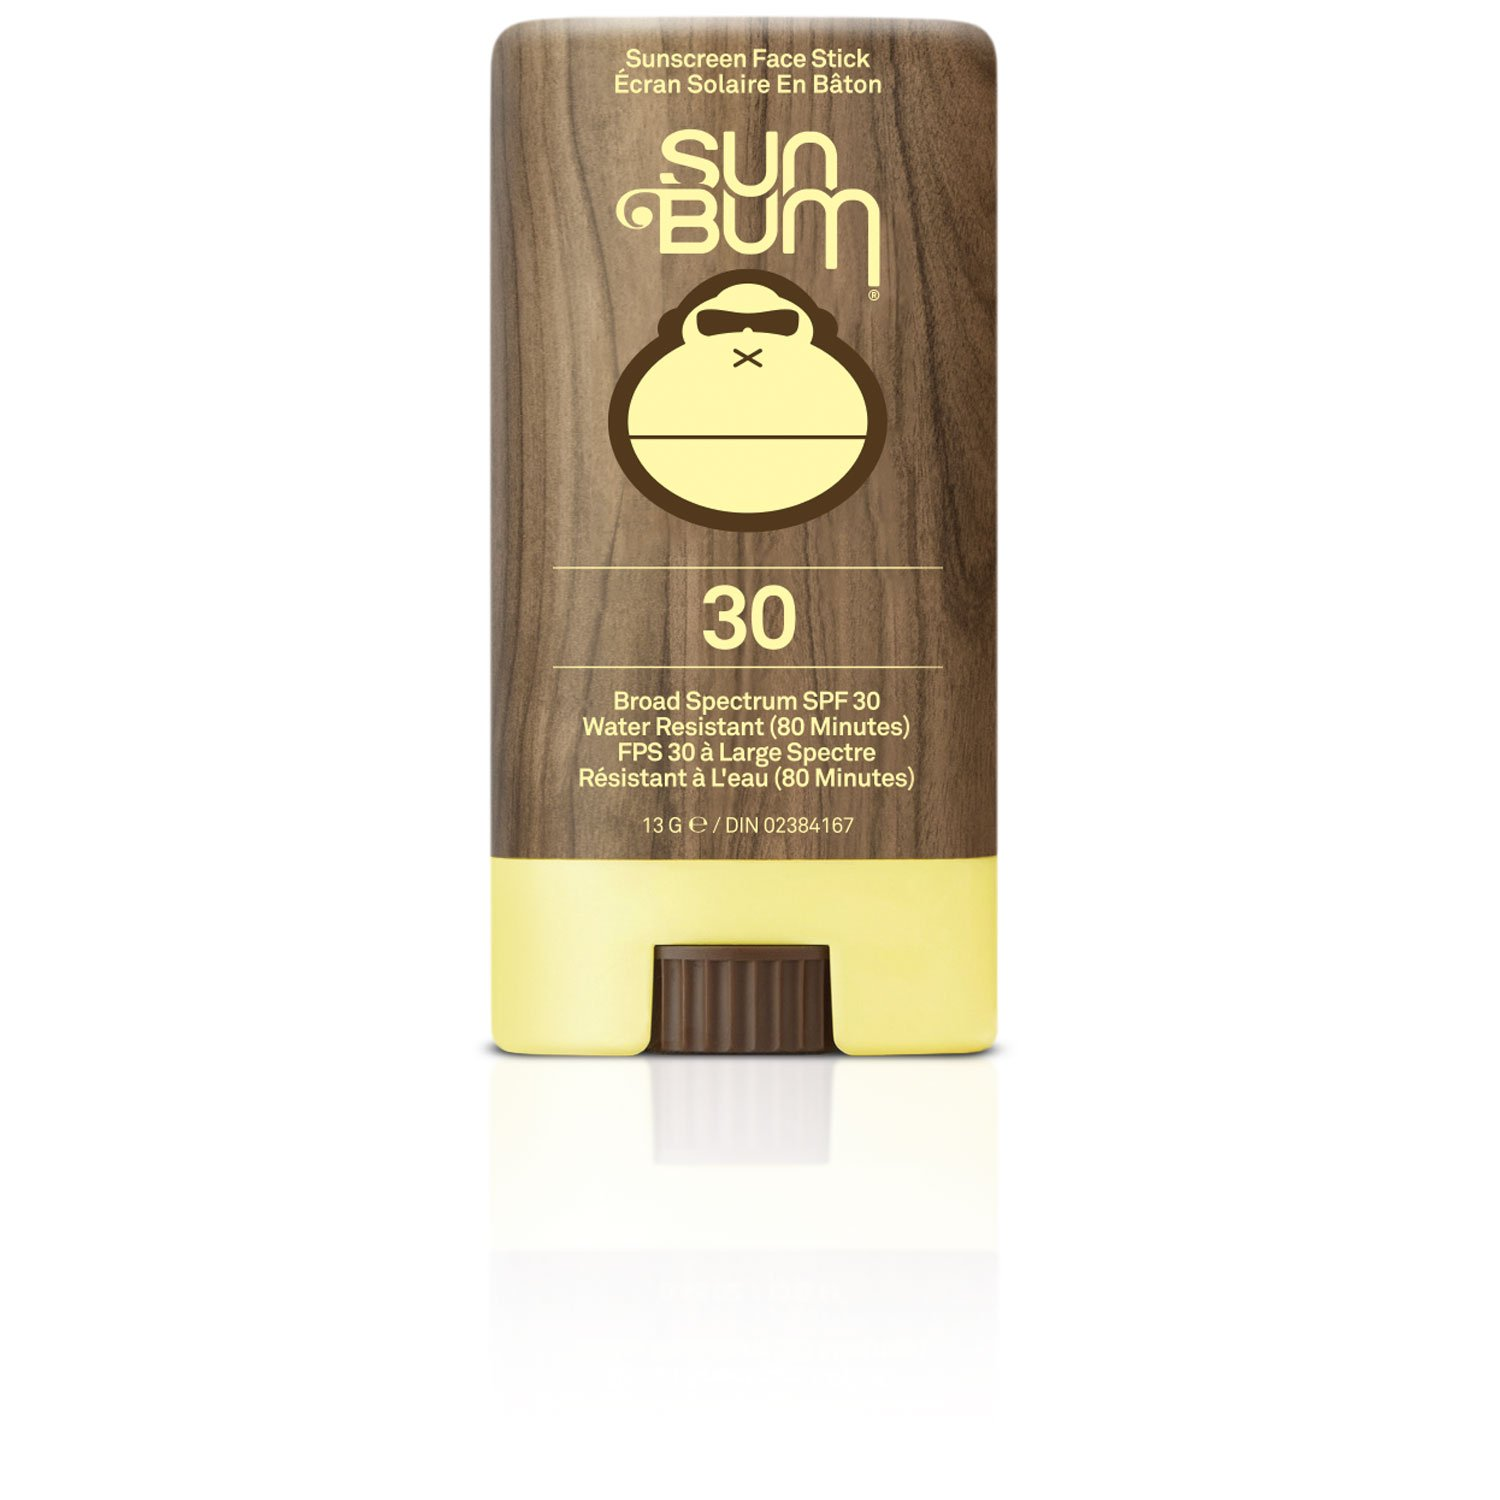 Sun Bum Premium Sunscreen Face Stick, SPF 30, 1 Count, Broad Spectrum UVA/UVB Protection, Paraben Free, Gluten Free, Oil Free 25-45030